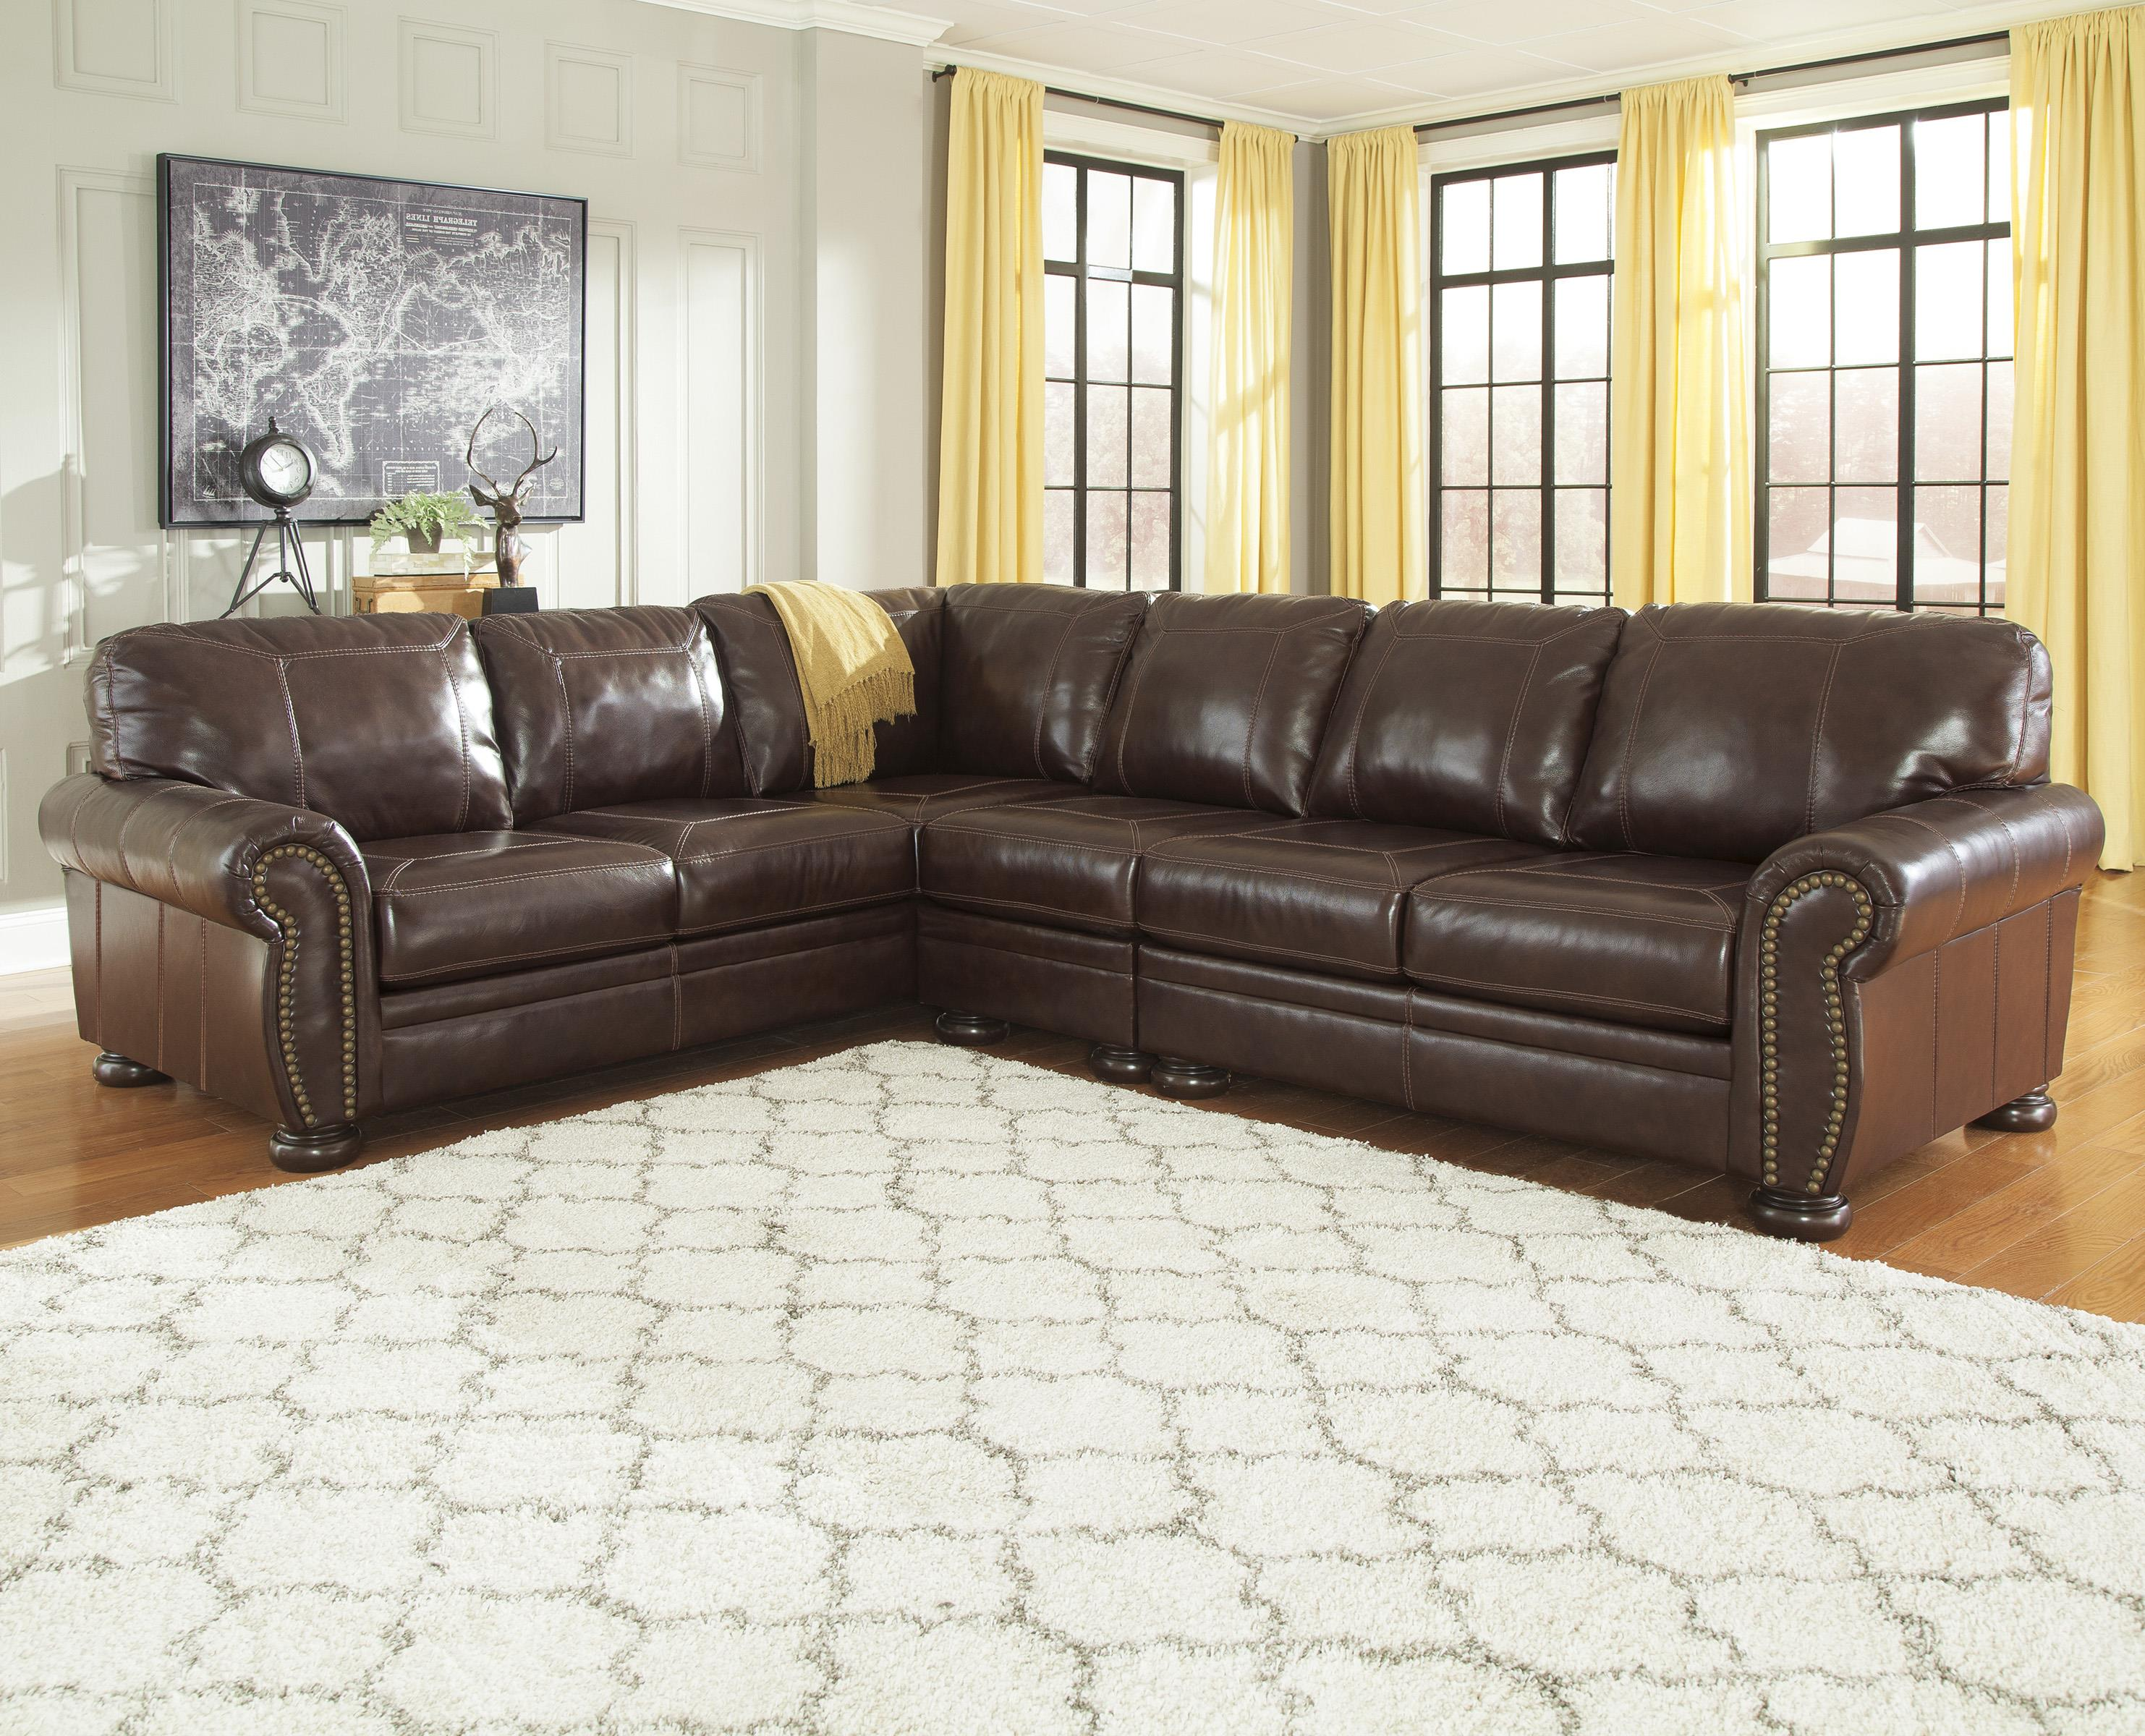 3-Piece Leather Match Sectional with Rolled Arms Nailhead Trim u0026 Bun Feet : leather sectional with nailhead trim - Sectionals, Sofas & Couches